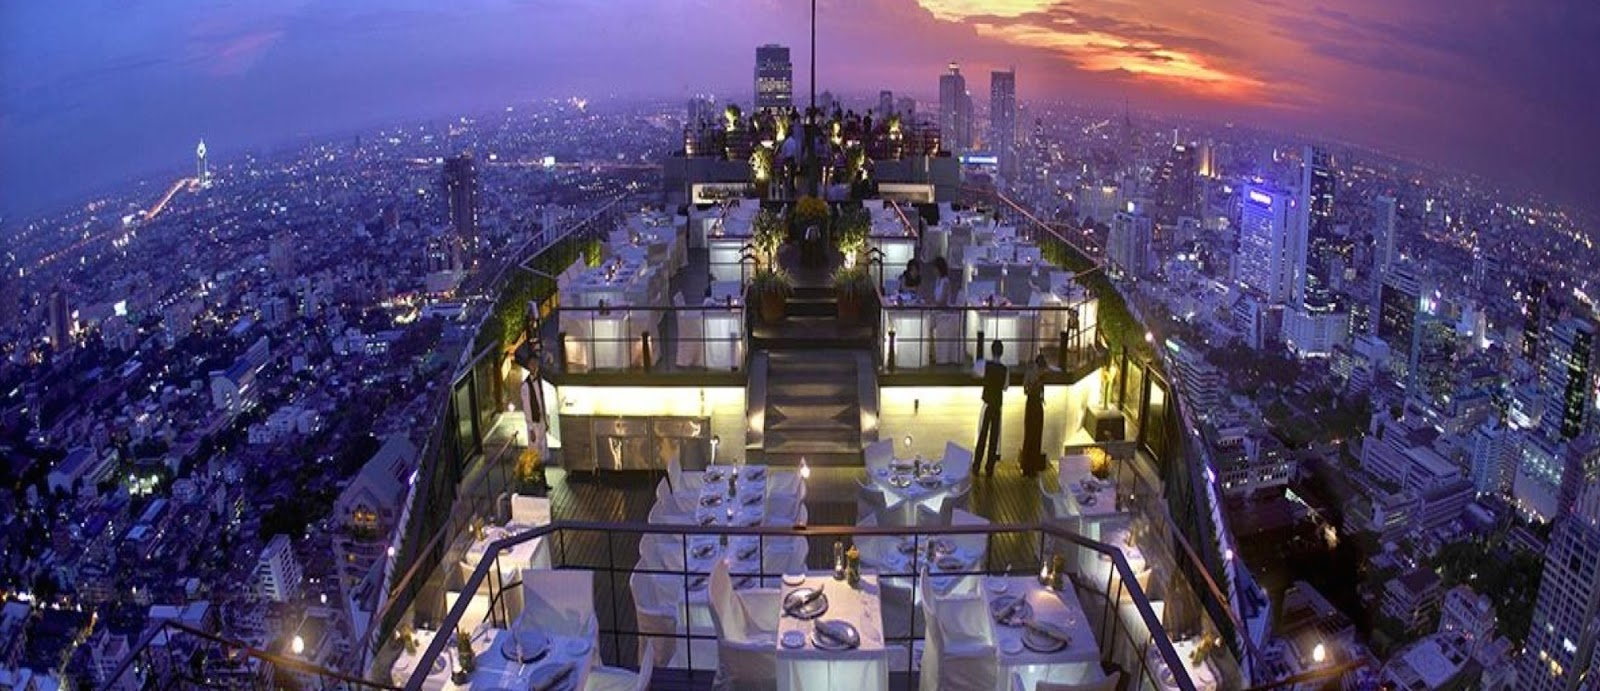 The World's 30 Best Rooftop Bars… Everyone Should Drink At #9 At Least Once. - The Vertigo Bar provides a stunning panoramic view of Bangkok, Thailand.